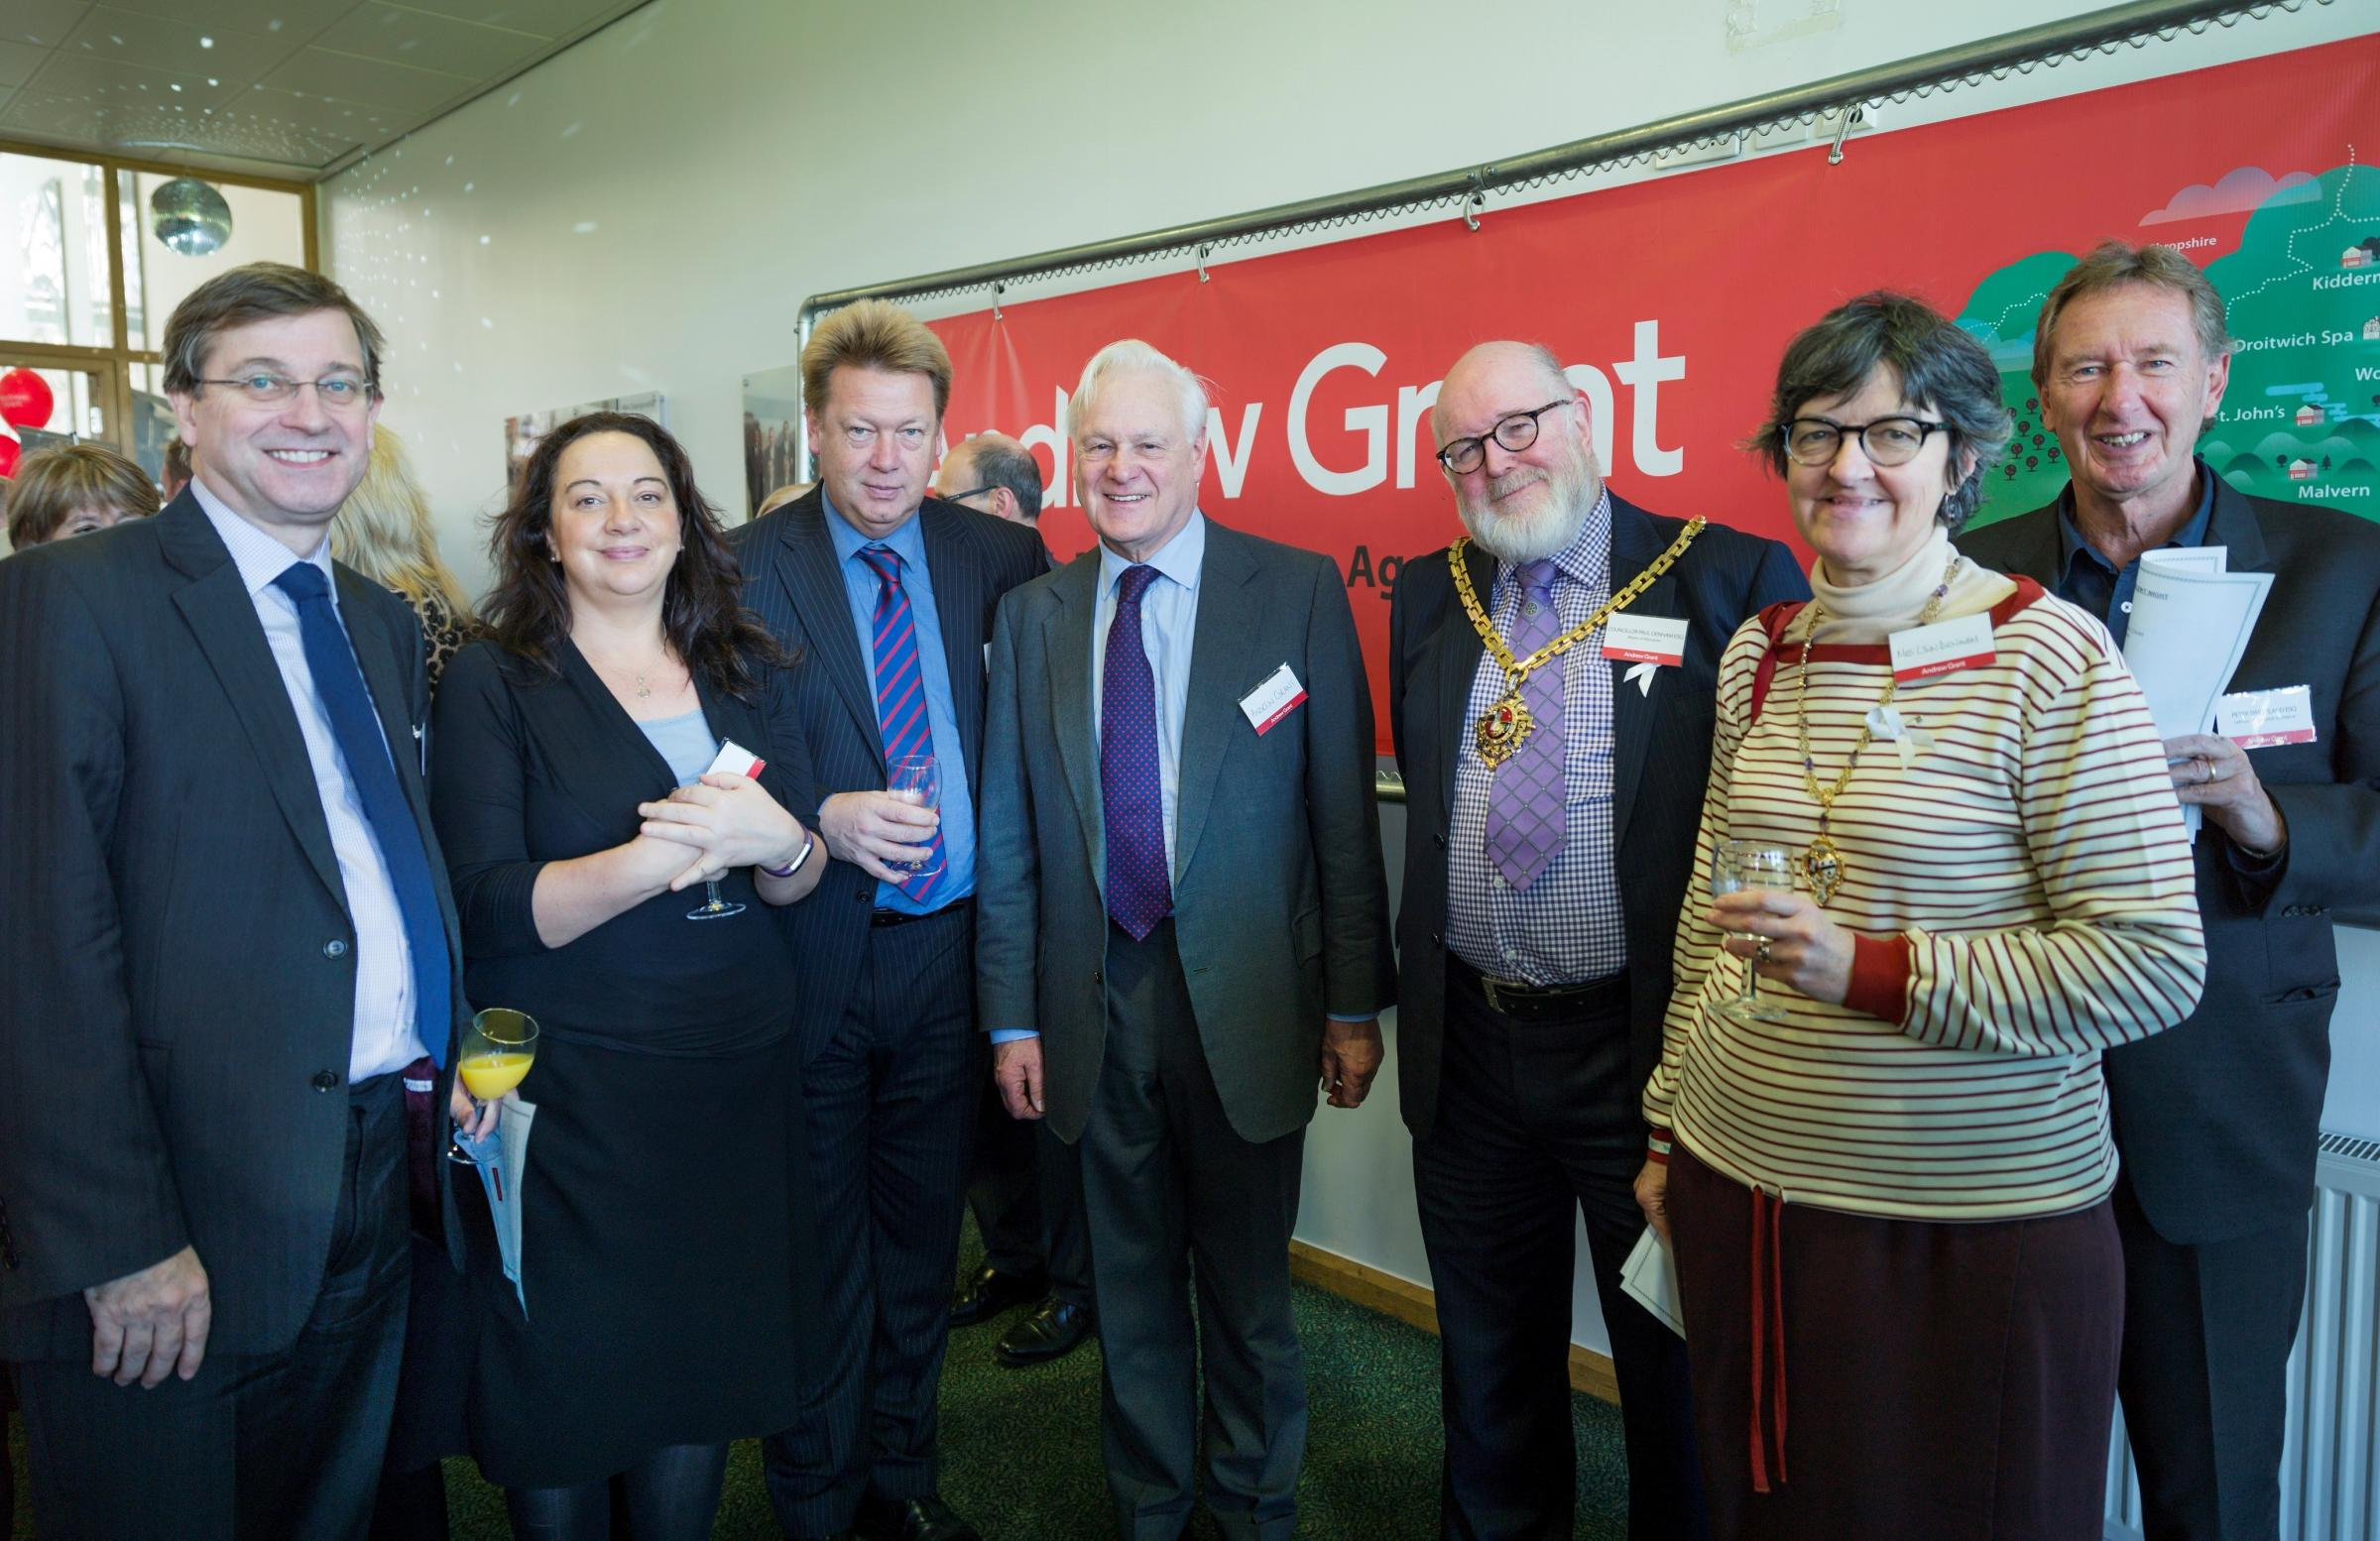 Andrew Grant and some of the guests at his Christmas Reception